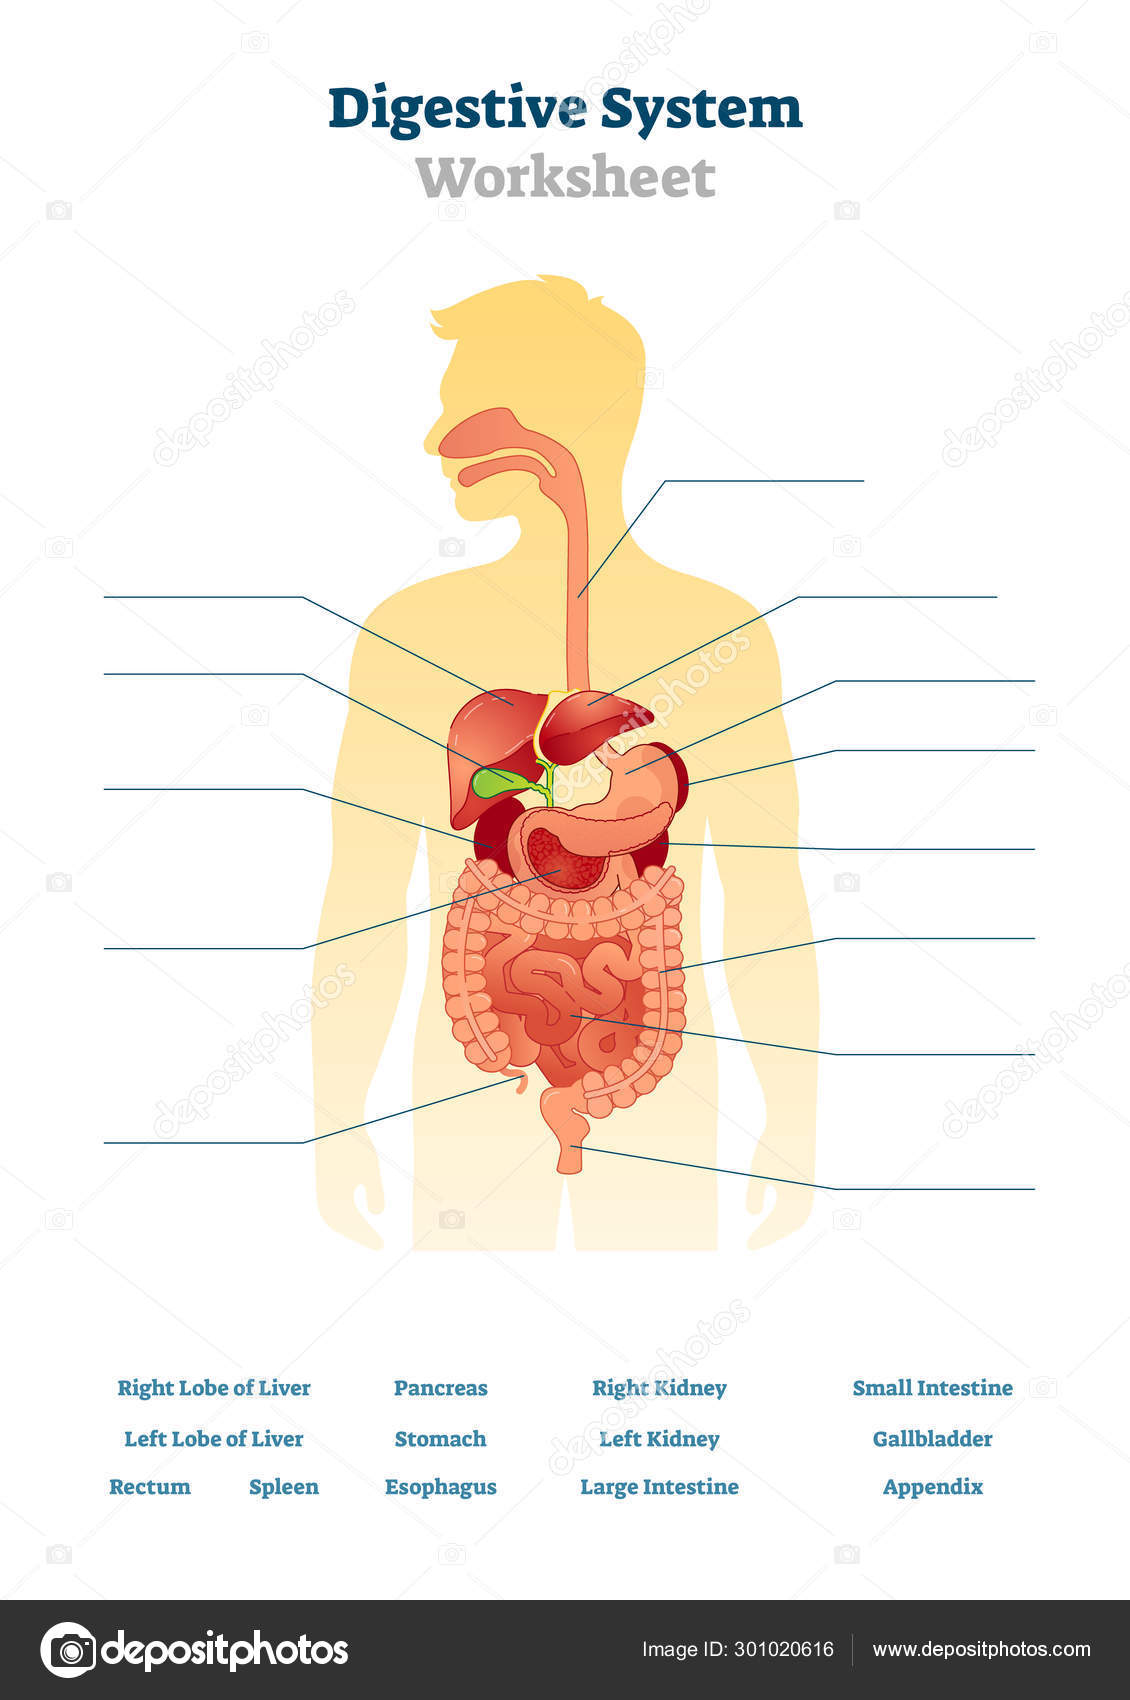 Digestive system worksheet vector illustration. Blank inner ...